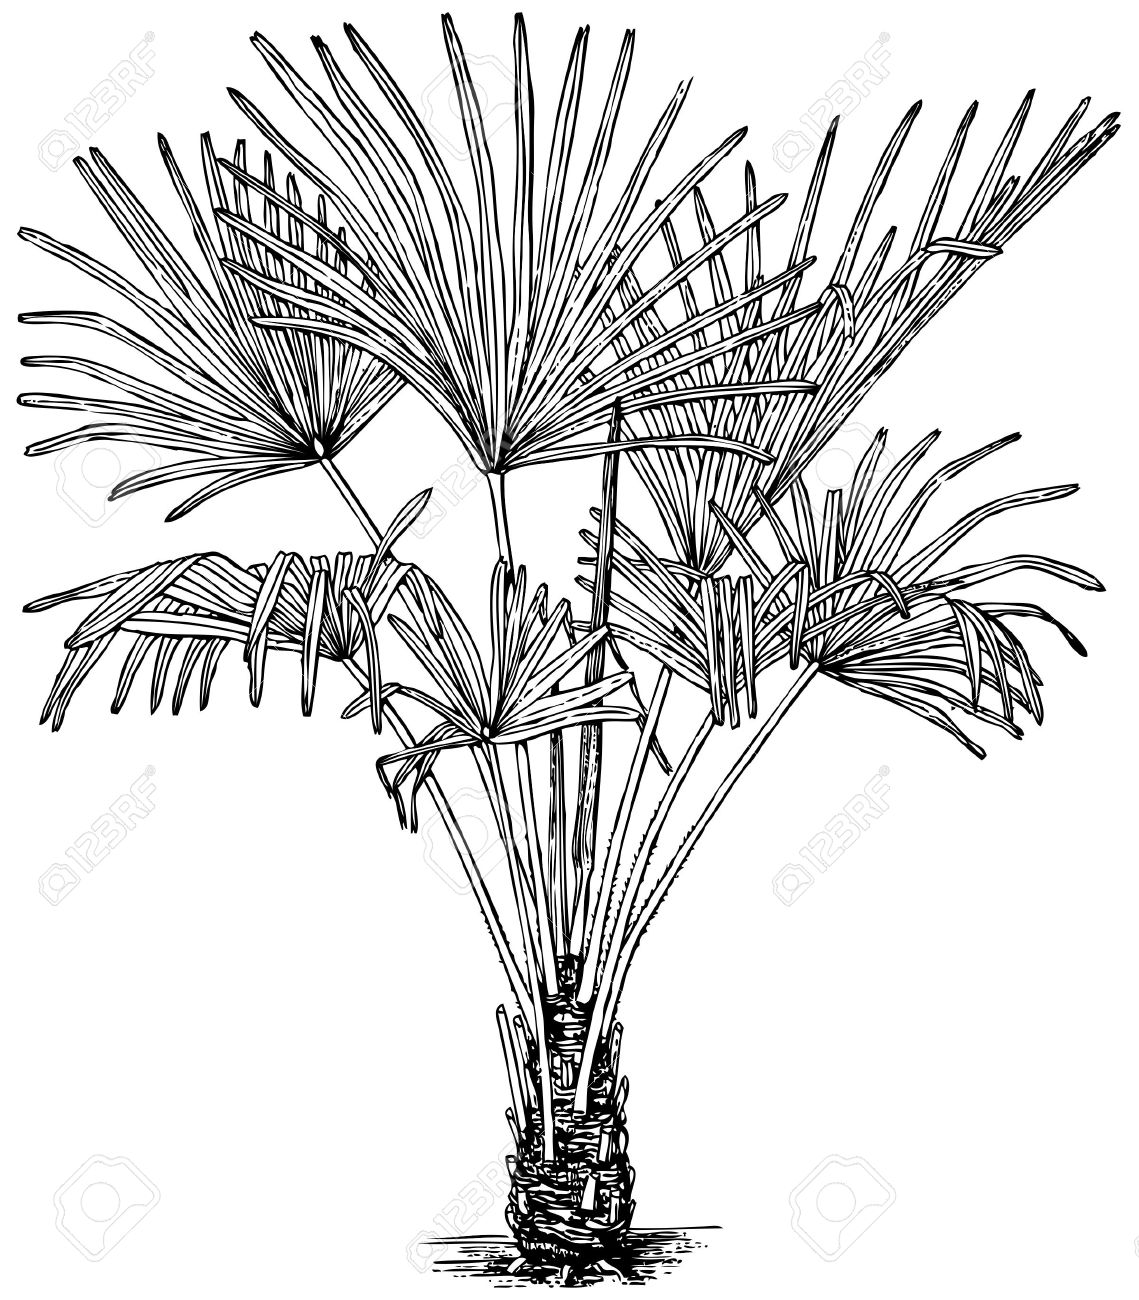 Plant Trachycarpus Fortunei (Windmill Palm) Isolated On White.